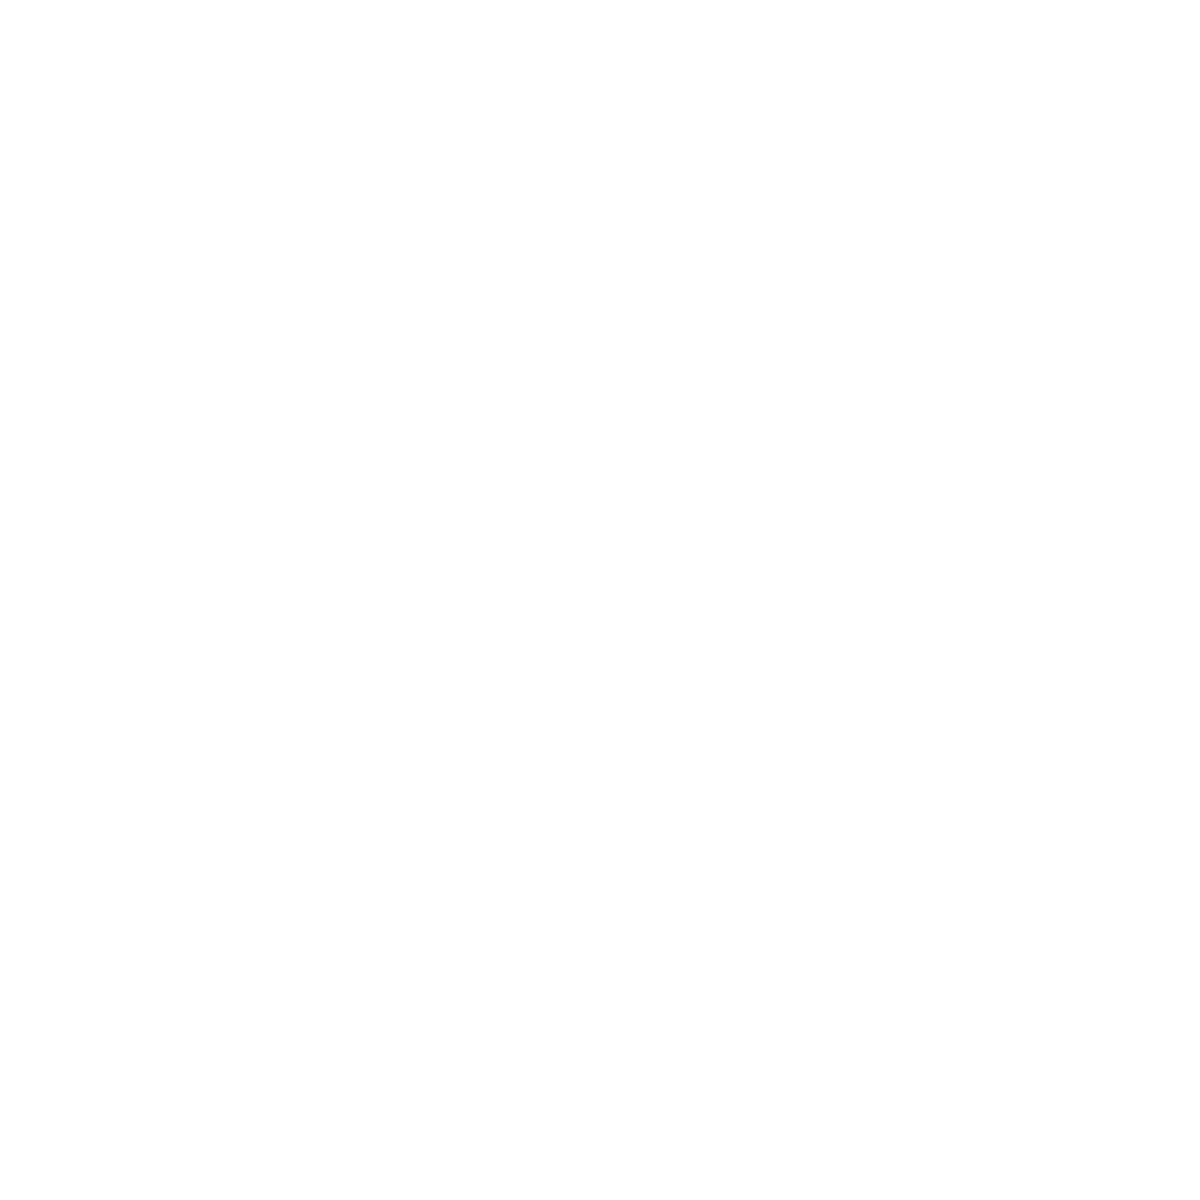 Number 1 icon.png